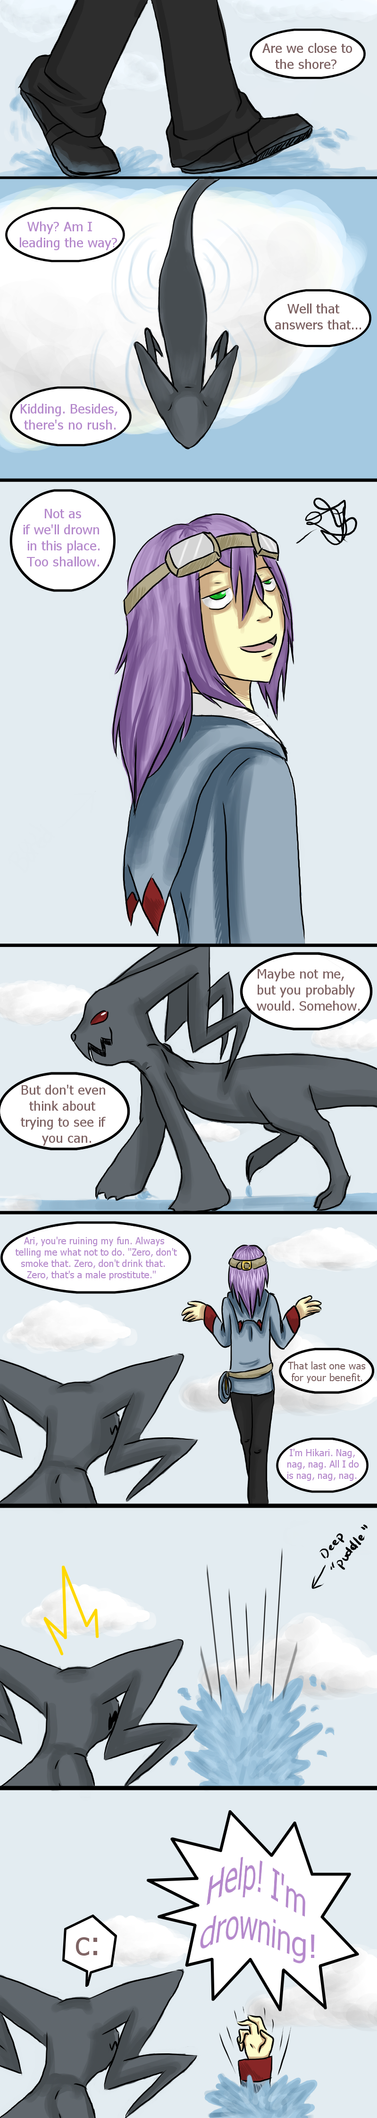 EA Intro. - Page 1 by x-whisp-x